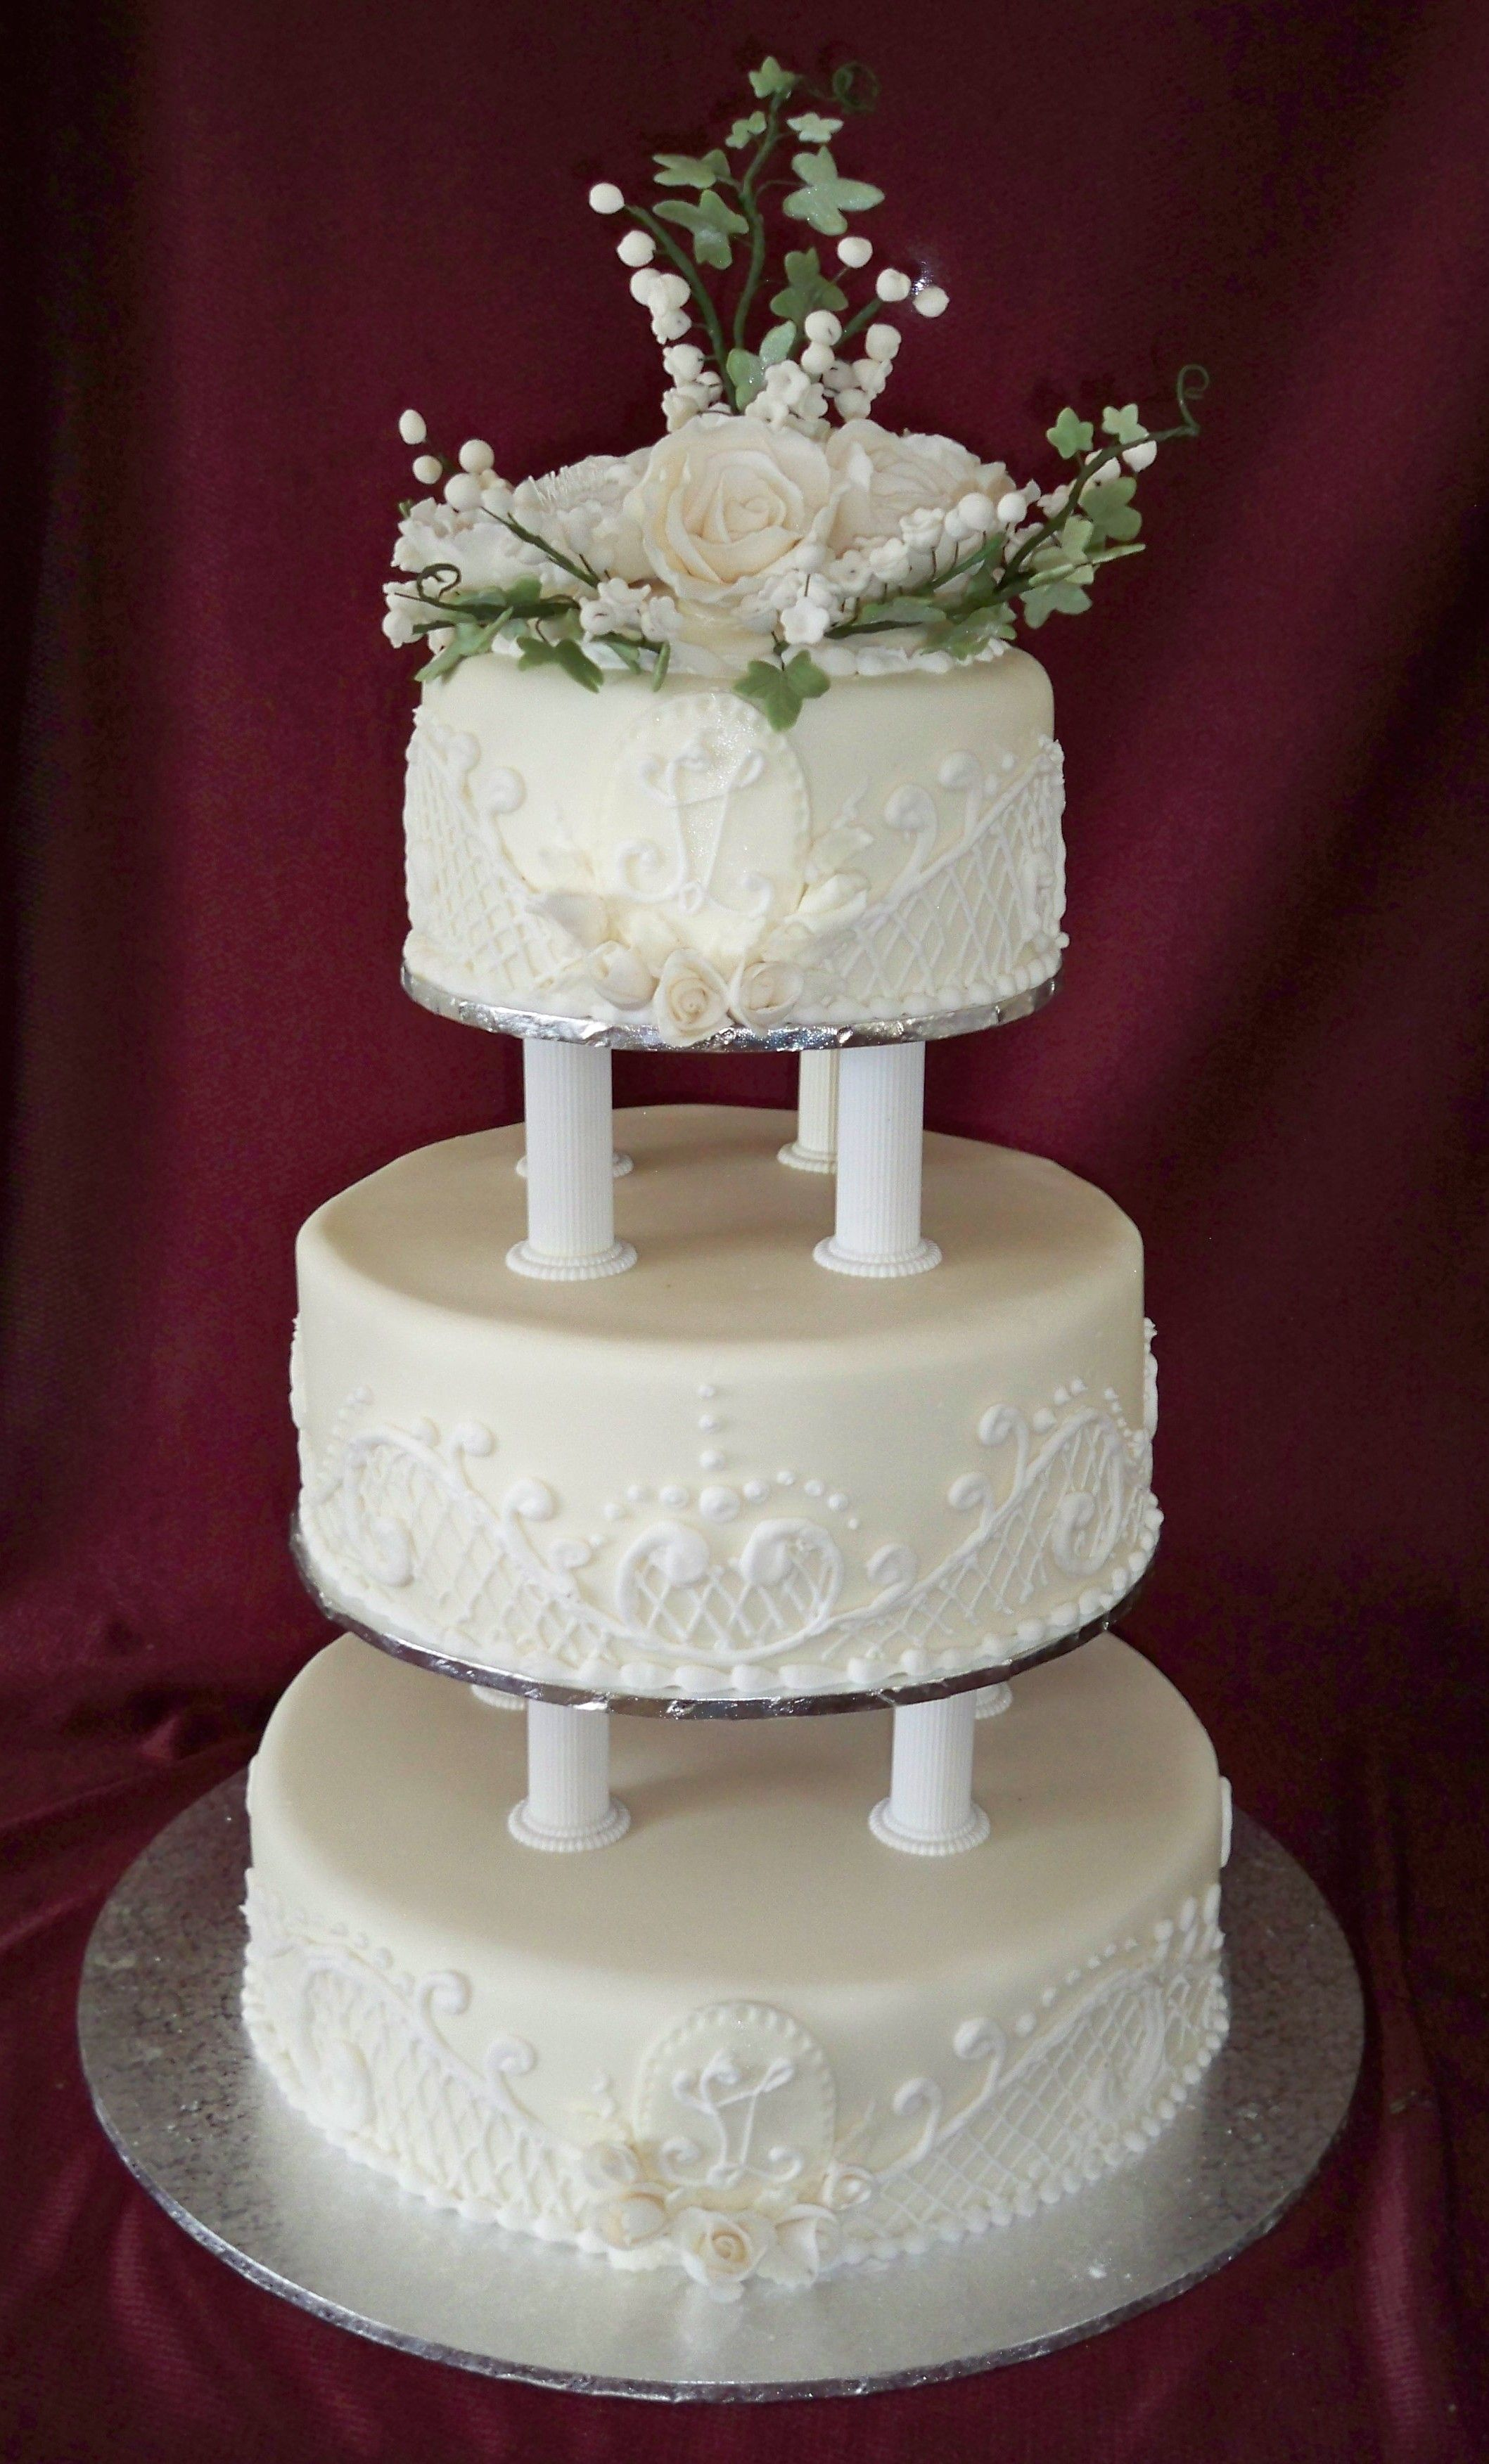 3 tier round traditional wedding cake with lace piping and